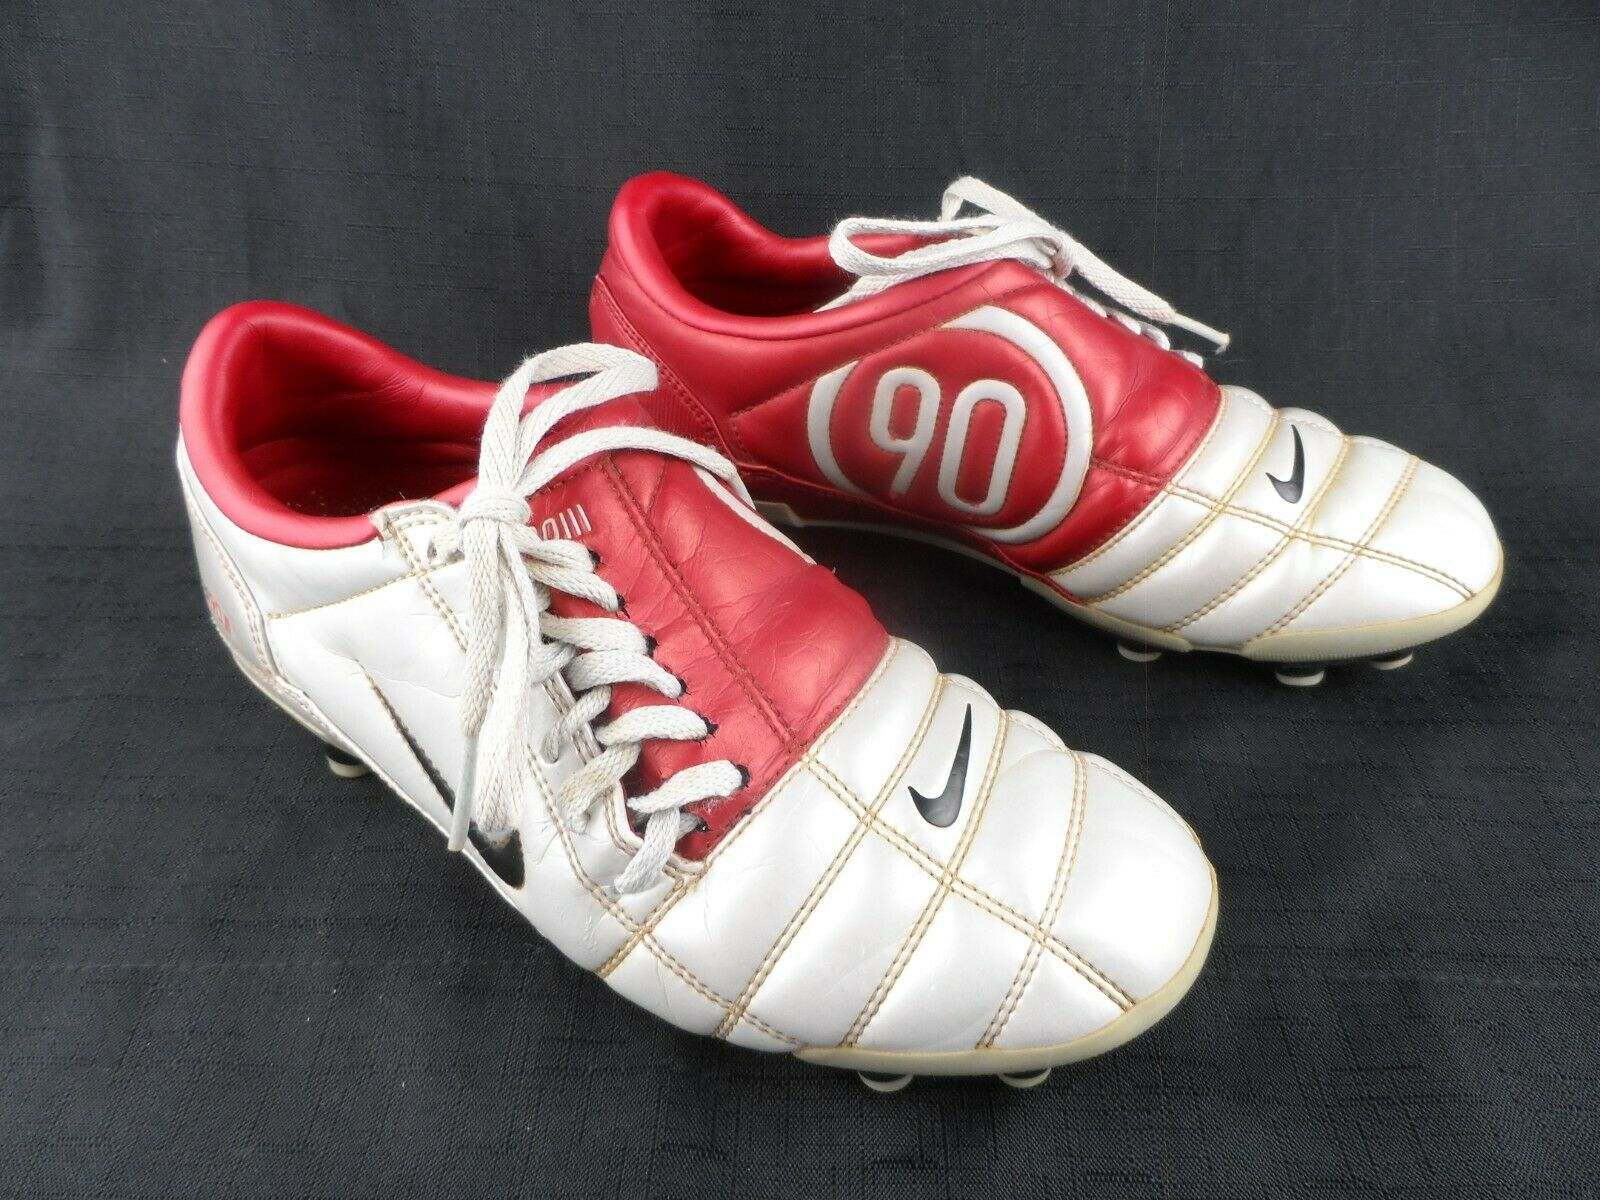 total 90 nike soccer shoes